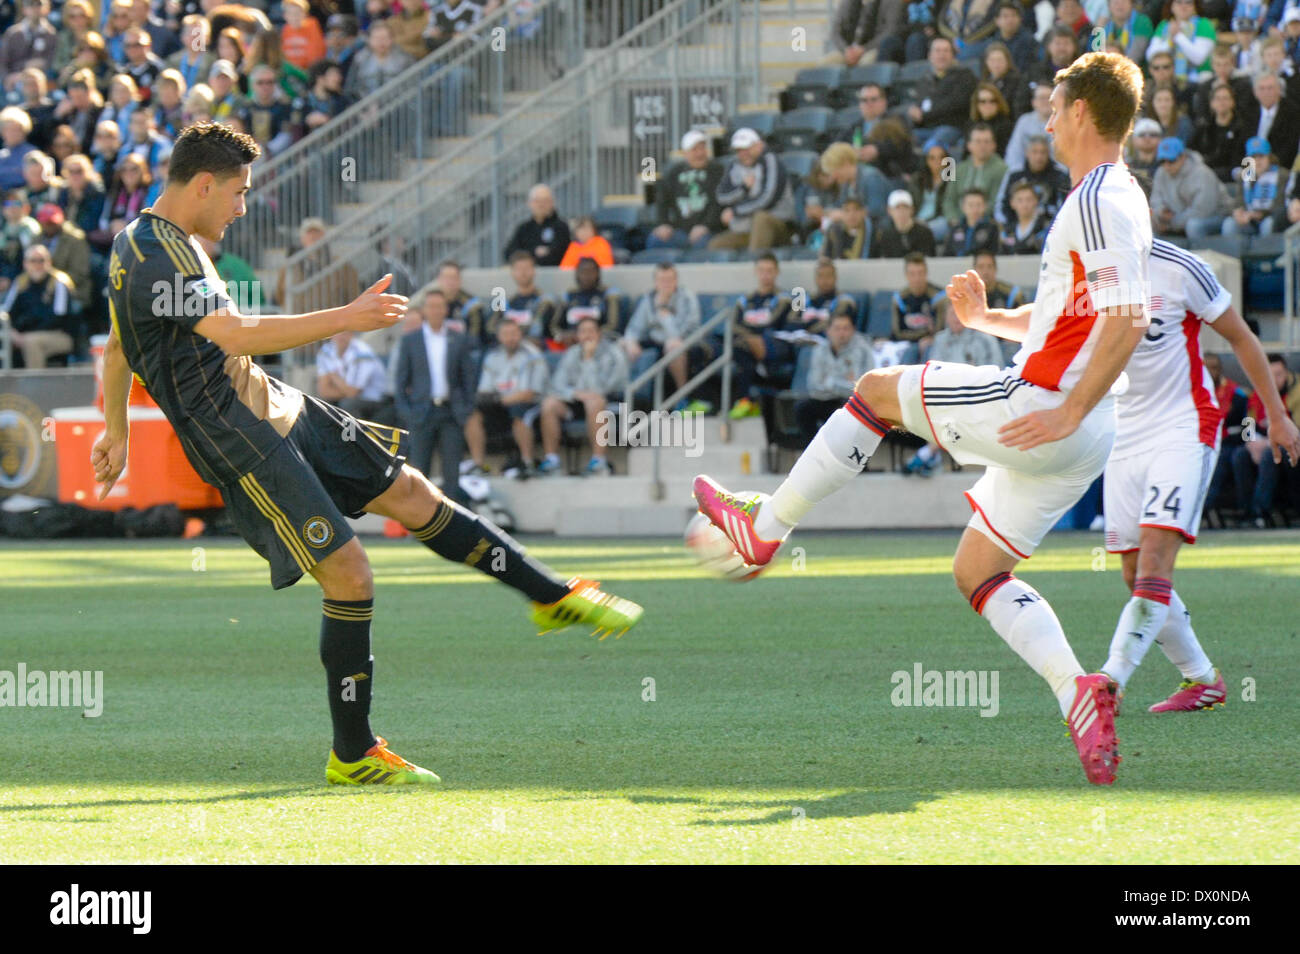 Brazilian international and Philadelphia Union soccer / football midfielder Leo Fernandes srikes the ball during a match with the New England Revolution at Talen Energy Stadium in Chester PA United States of America during a sunny fall / autumn day outside of Philadelphia - Stock Image